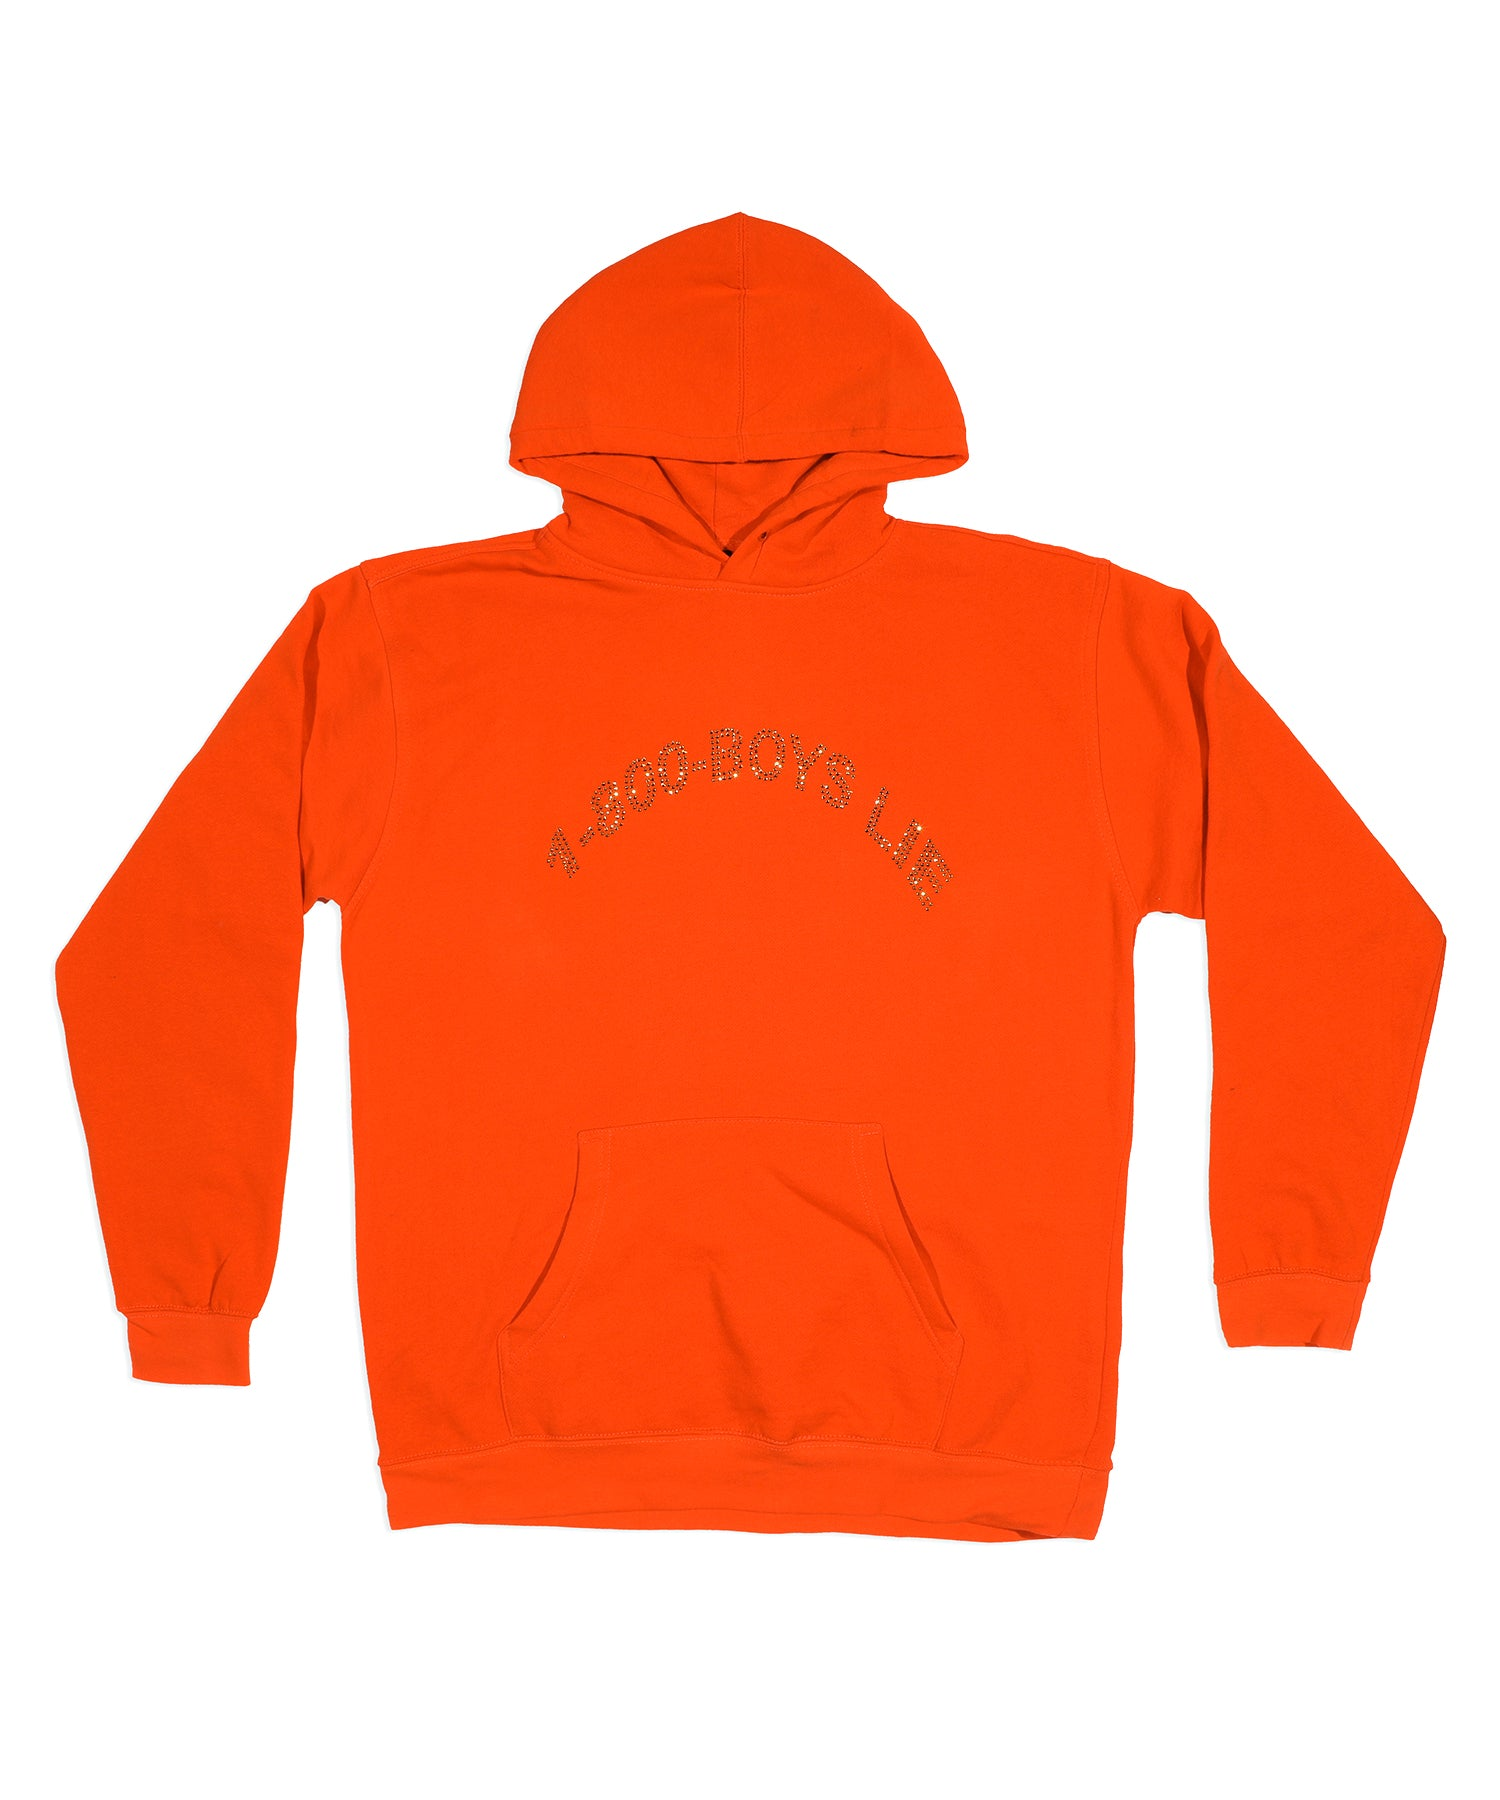 The Orange 1-800 Remix Hoodie